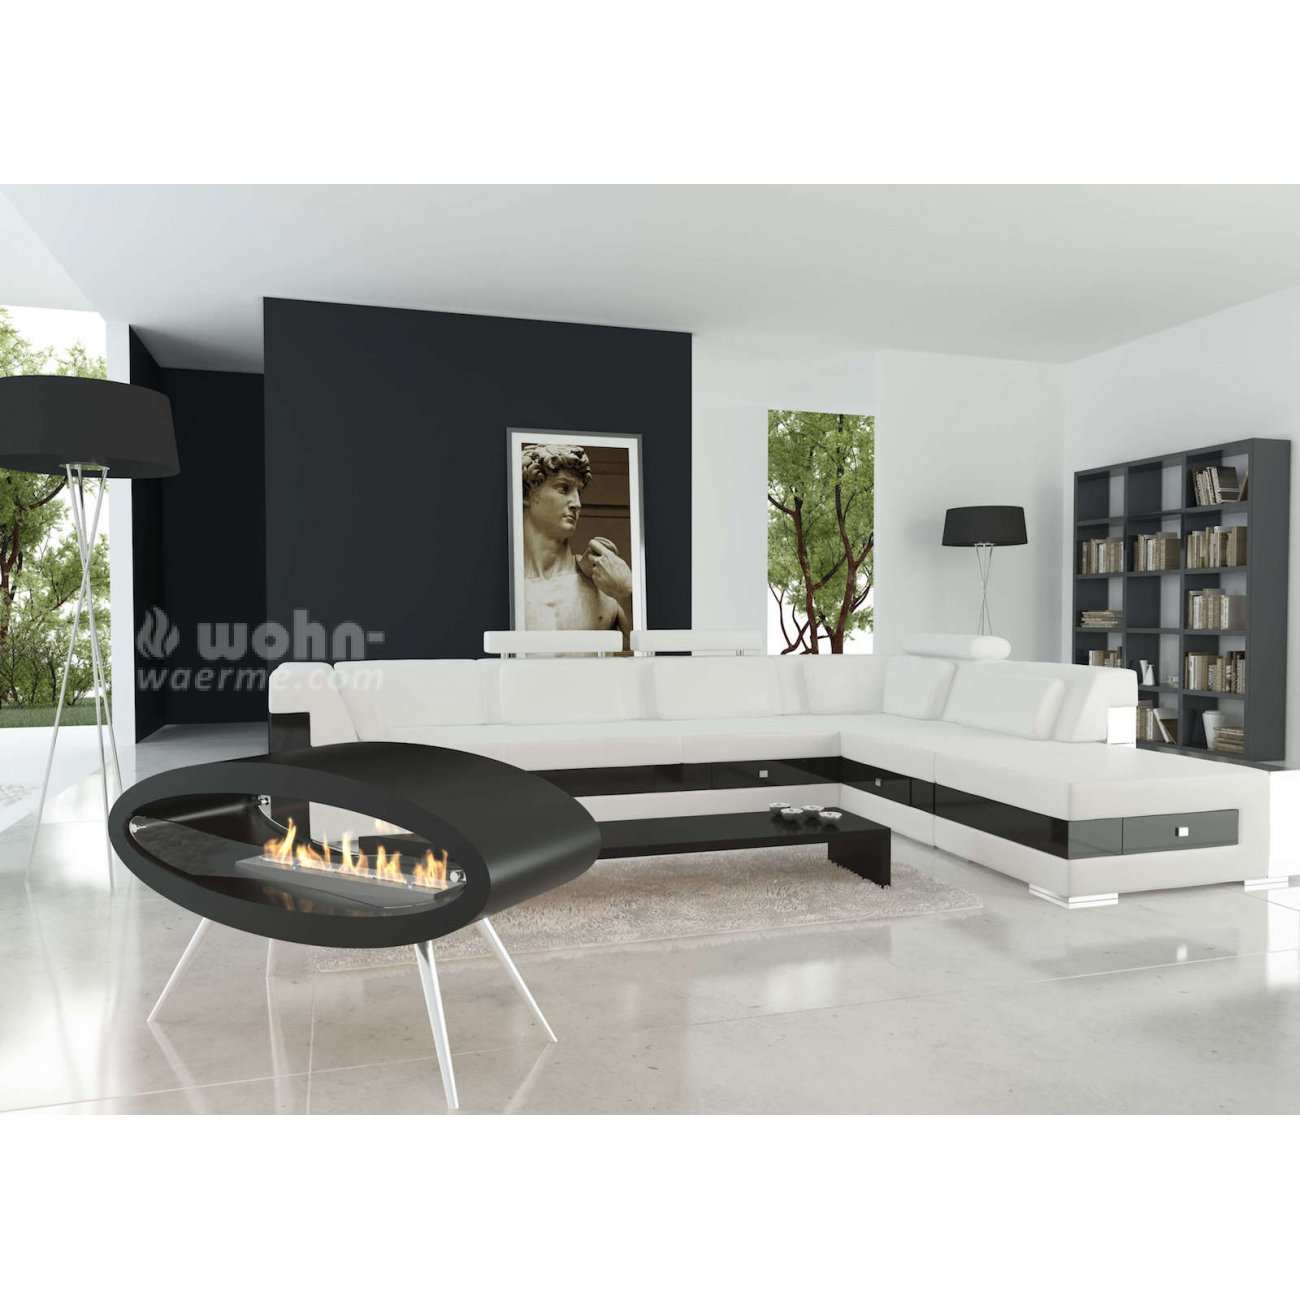 decoflame ellipse design ethanol kamin als standkamin. Black Bedroom Furniture Sets. Home Design Ideas